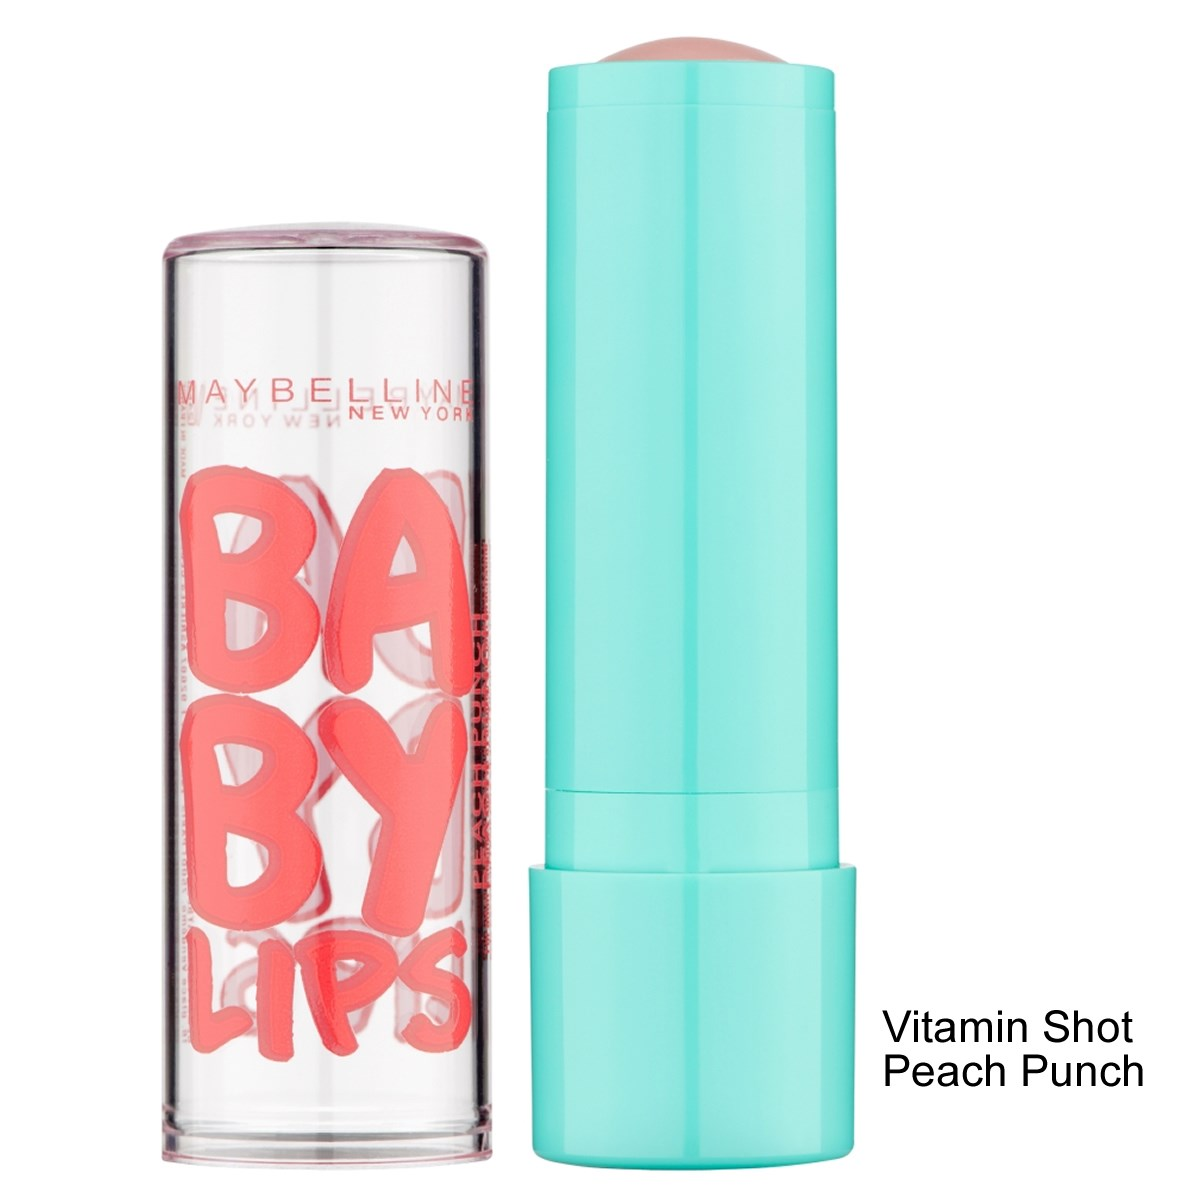 Maybelline Baby Lips Vitamin Shot Peach Punch